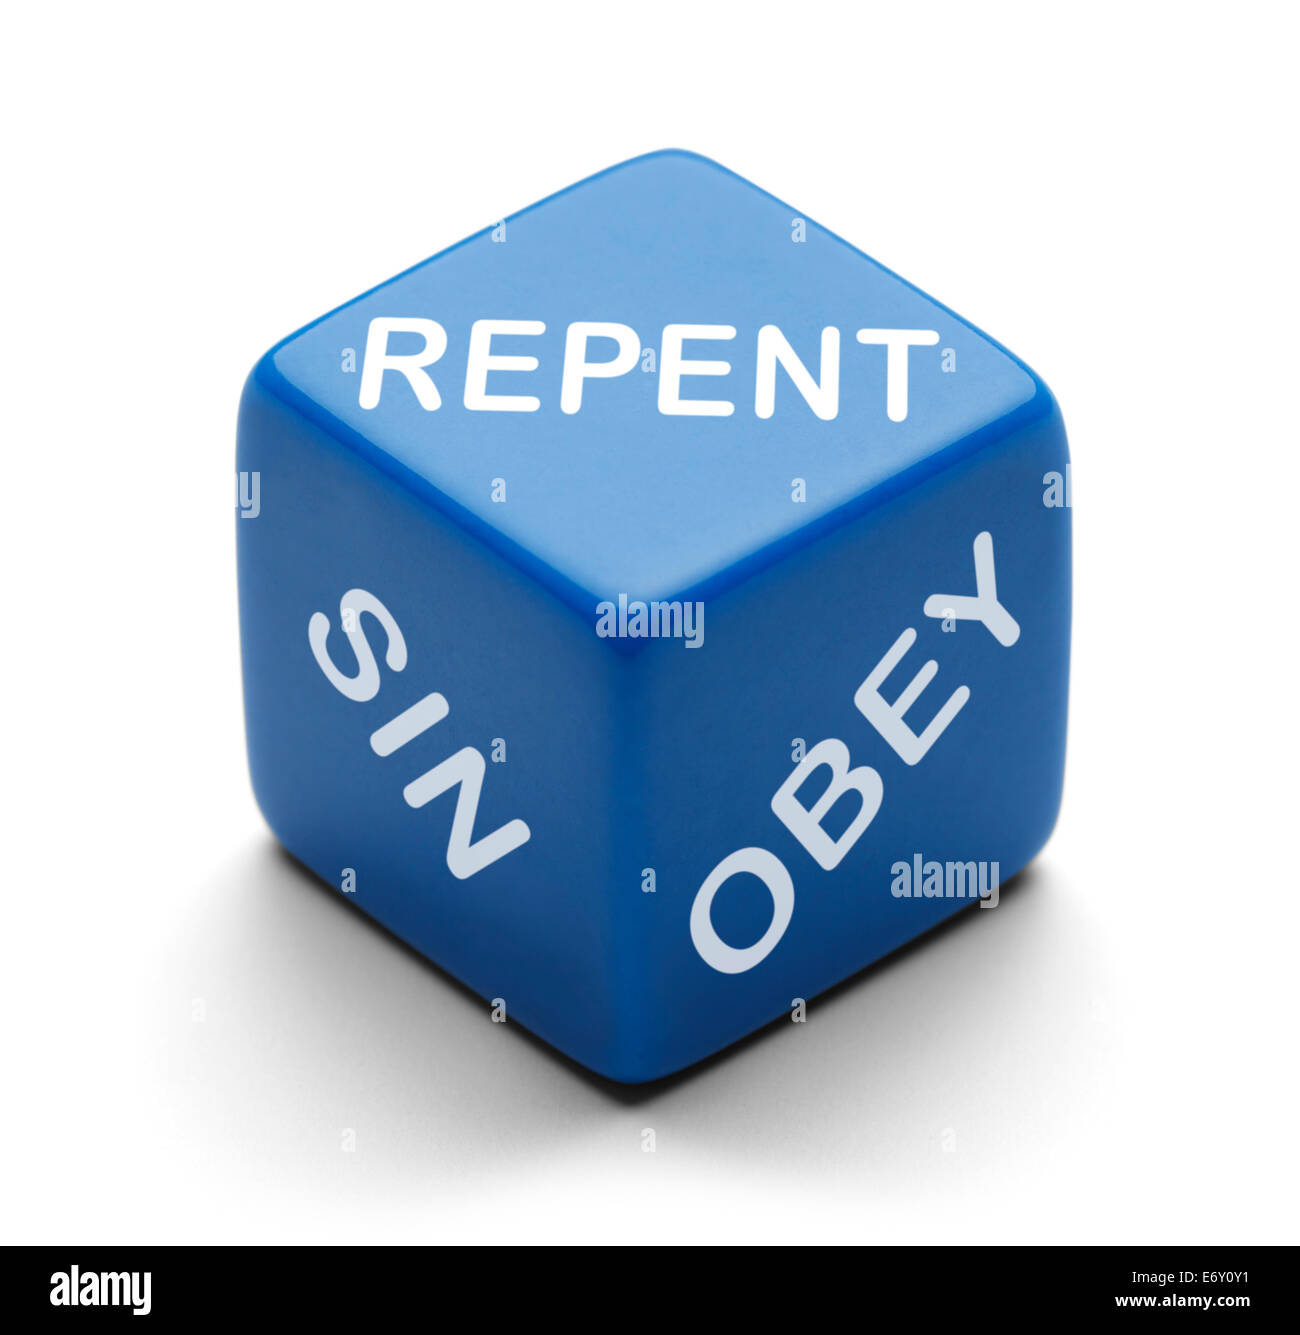 Blue Dice with Repent Sin and Obey on it Isolated on a White Background. - Stock Image